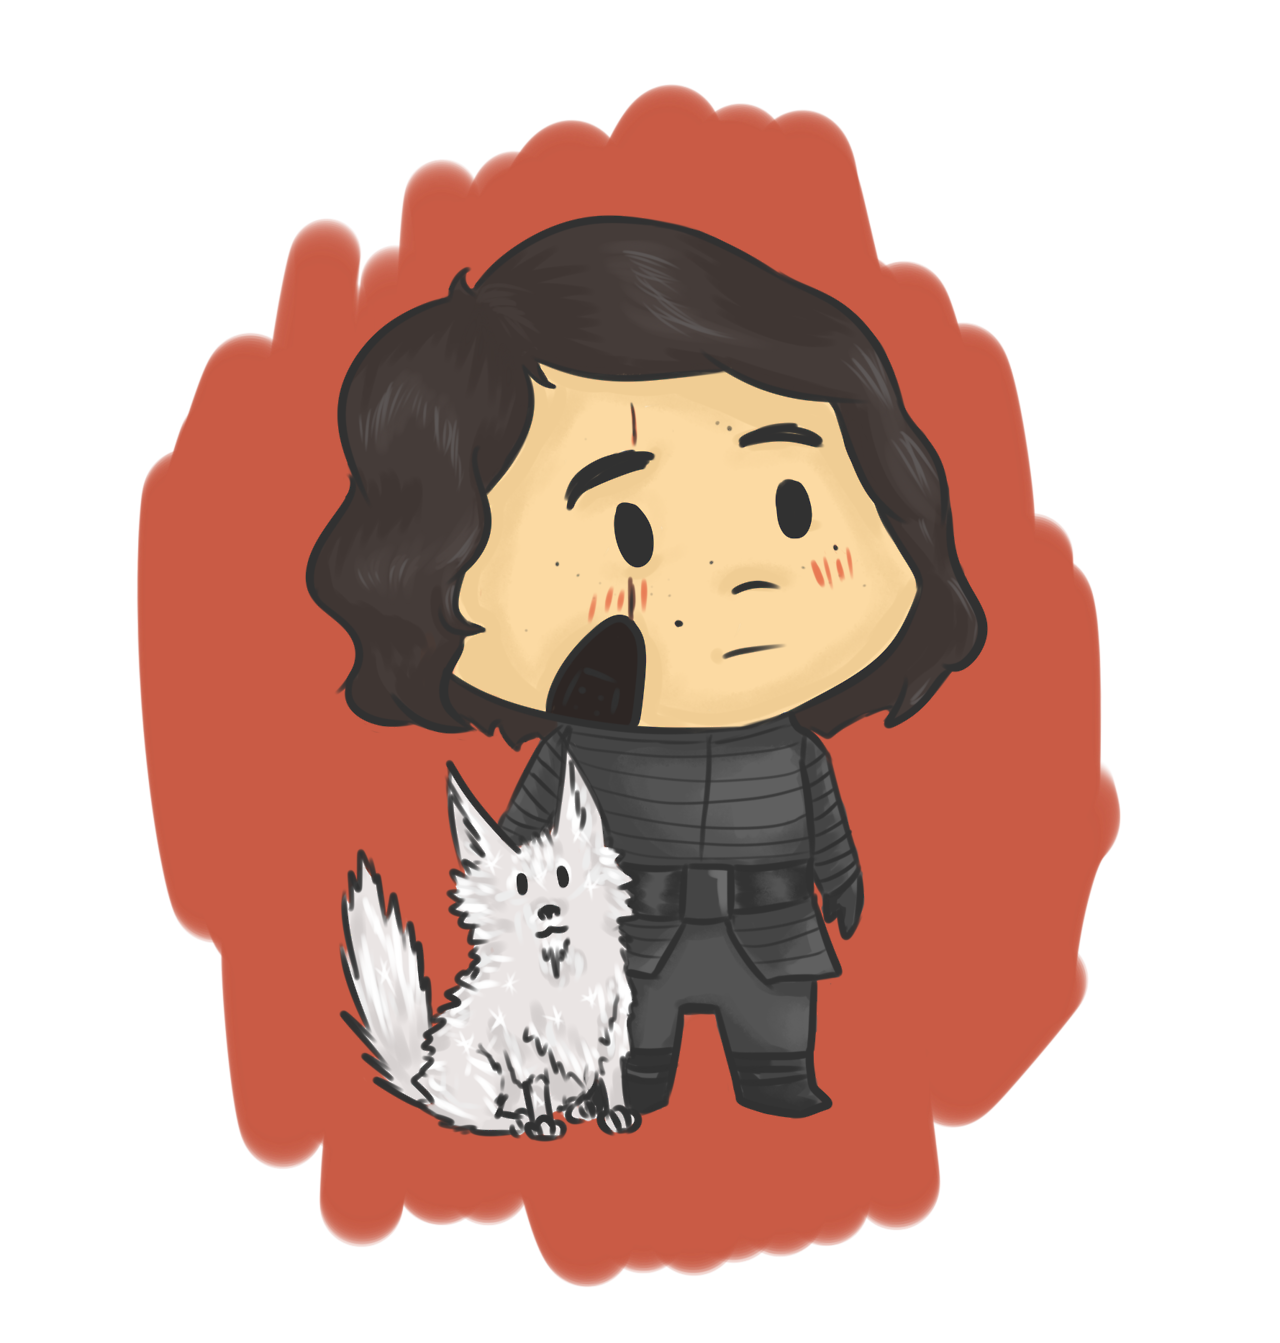 Star wars mara jade clipart png transparent library Shamelessly draws kylo ren with all the cute star | Pinterest | Art ... png transparent library